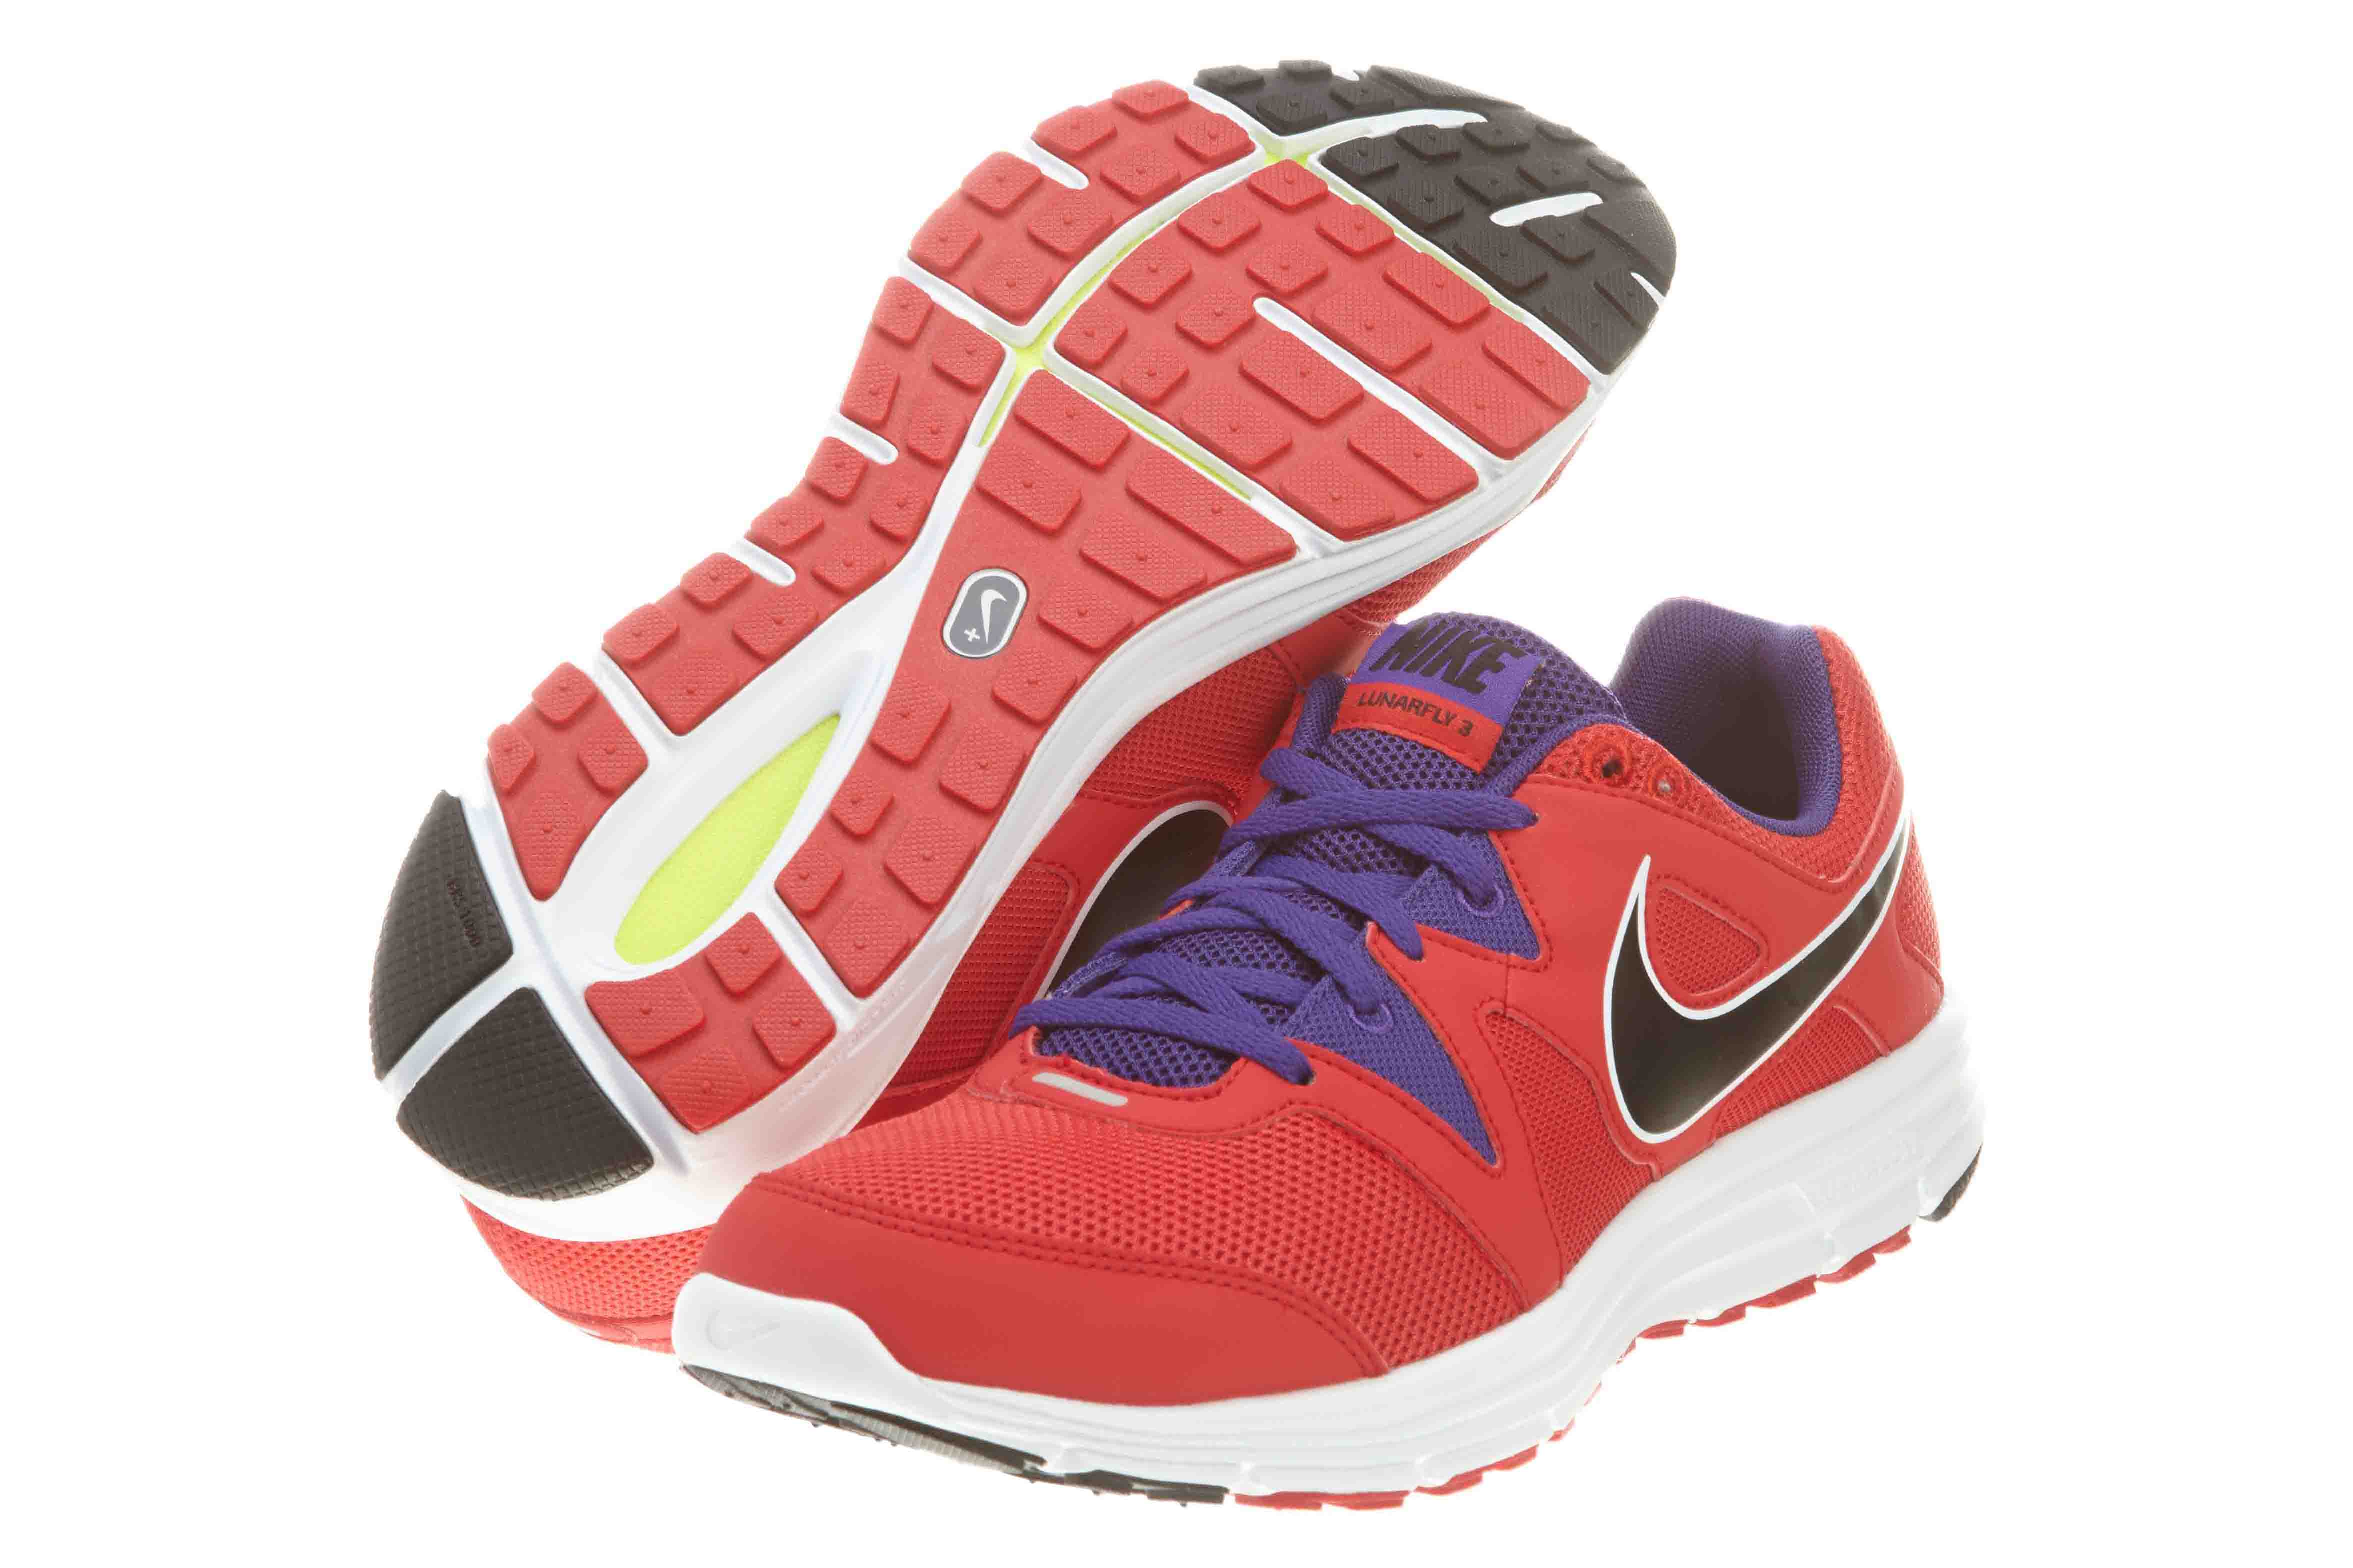 size 40 0c42c 0e400 Nike Womens Free XT Motion Fit Running Shoes